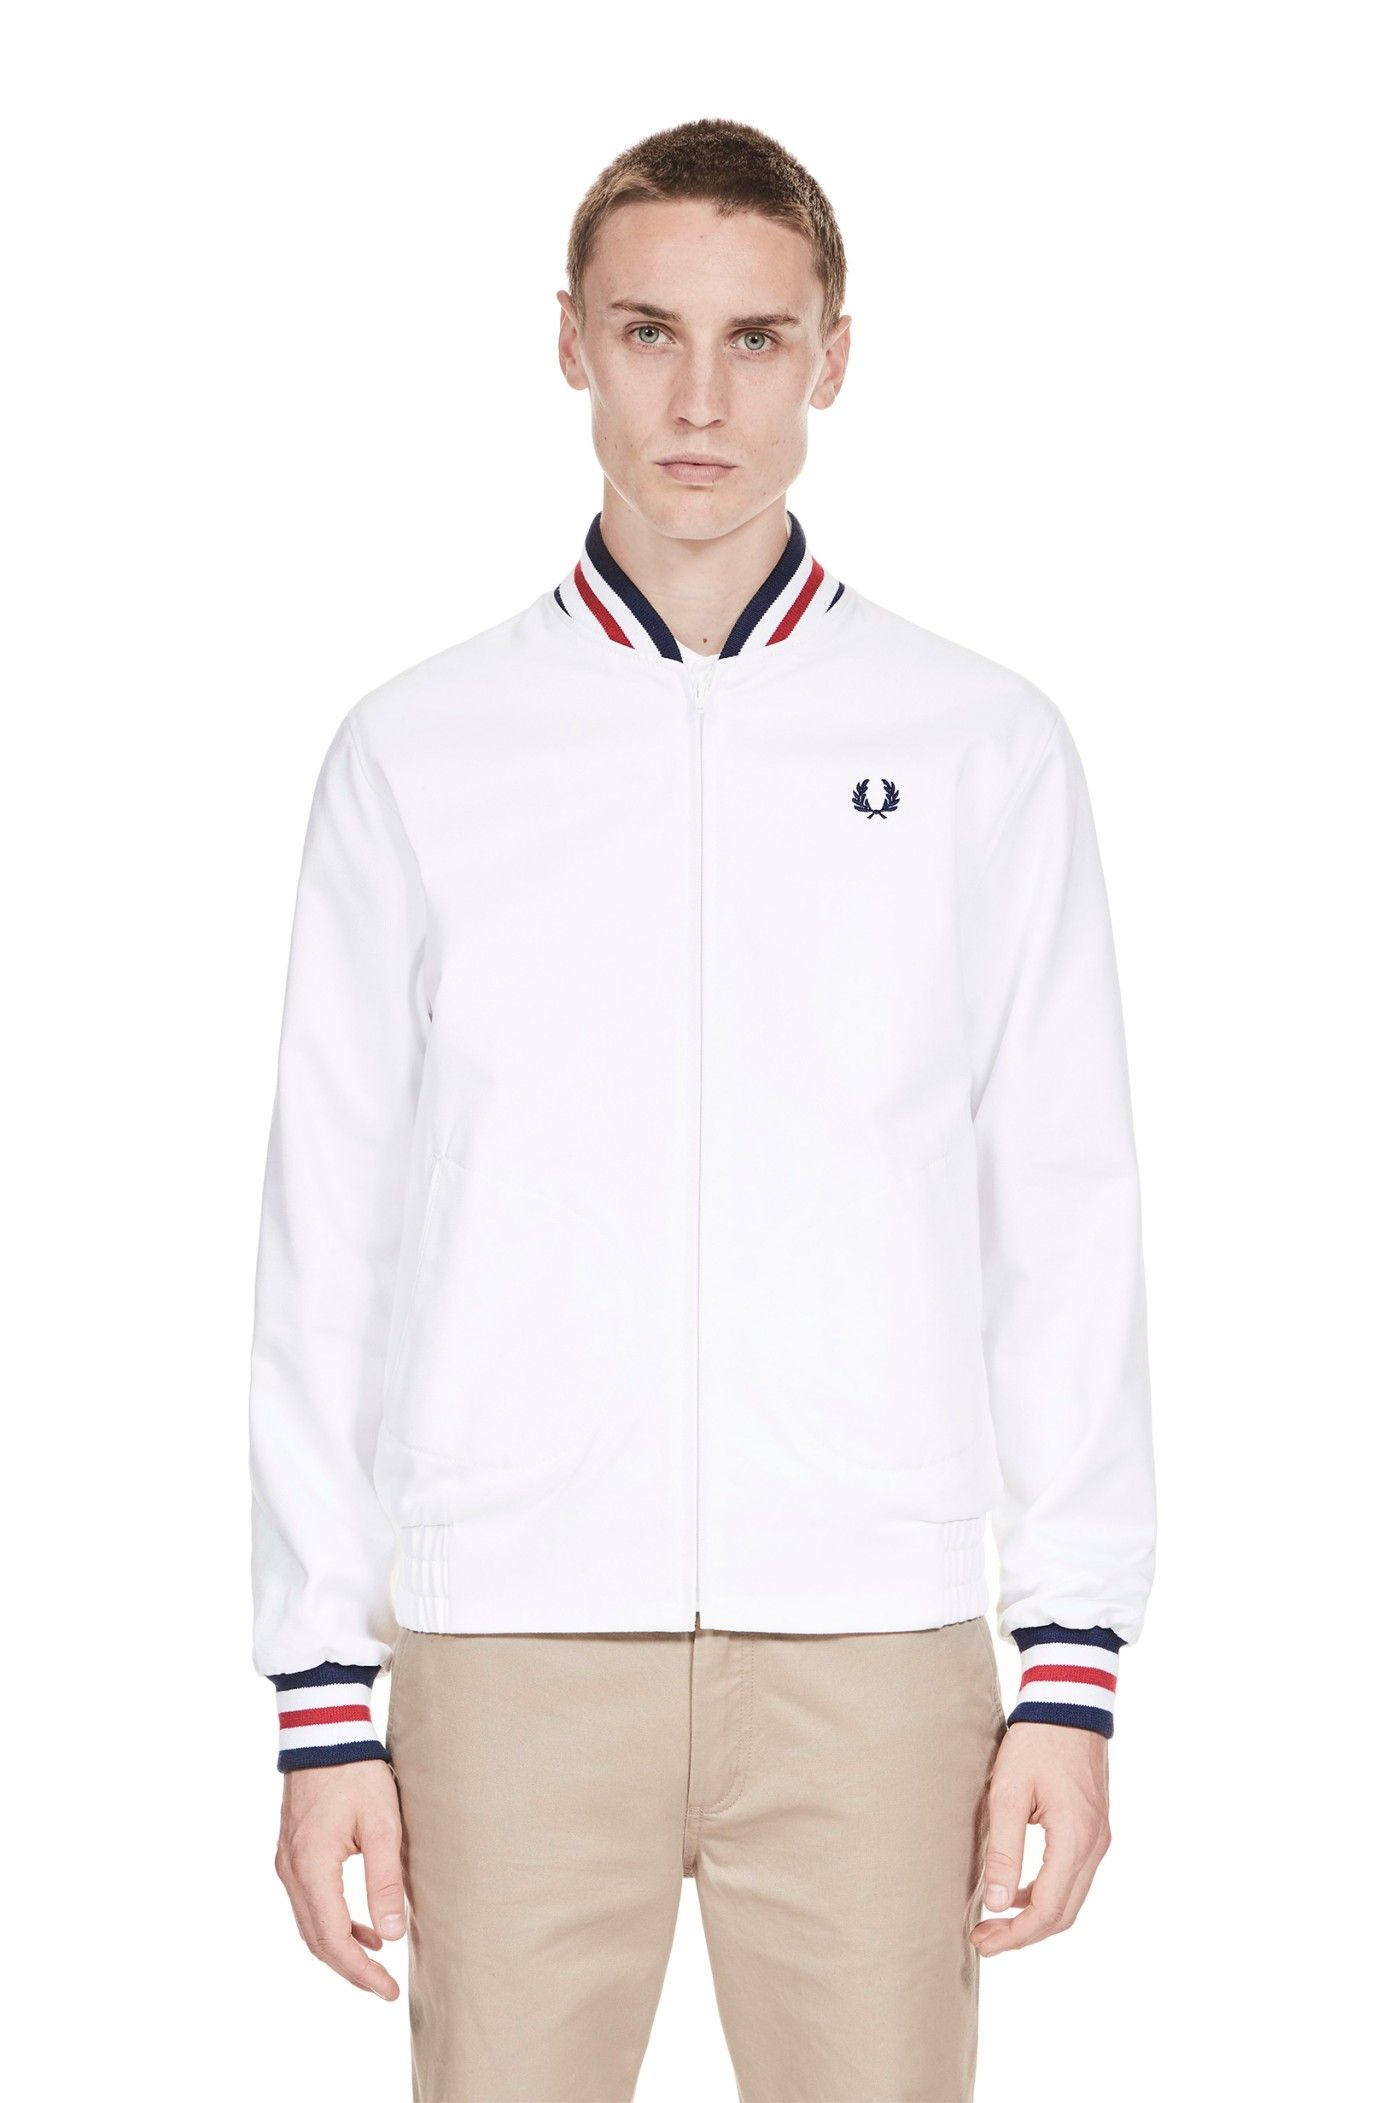 3c922b3d3 Fred Perry - Reissues Made in England Original Tennis Bomber White ...